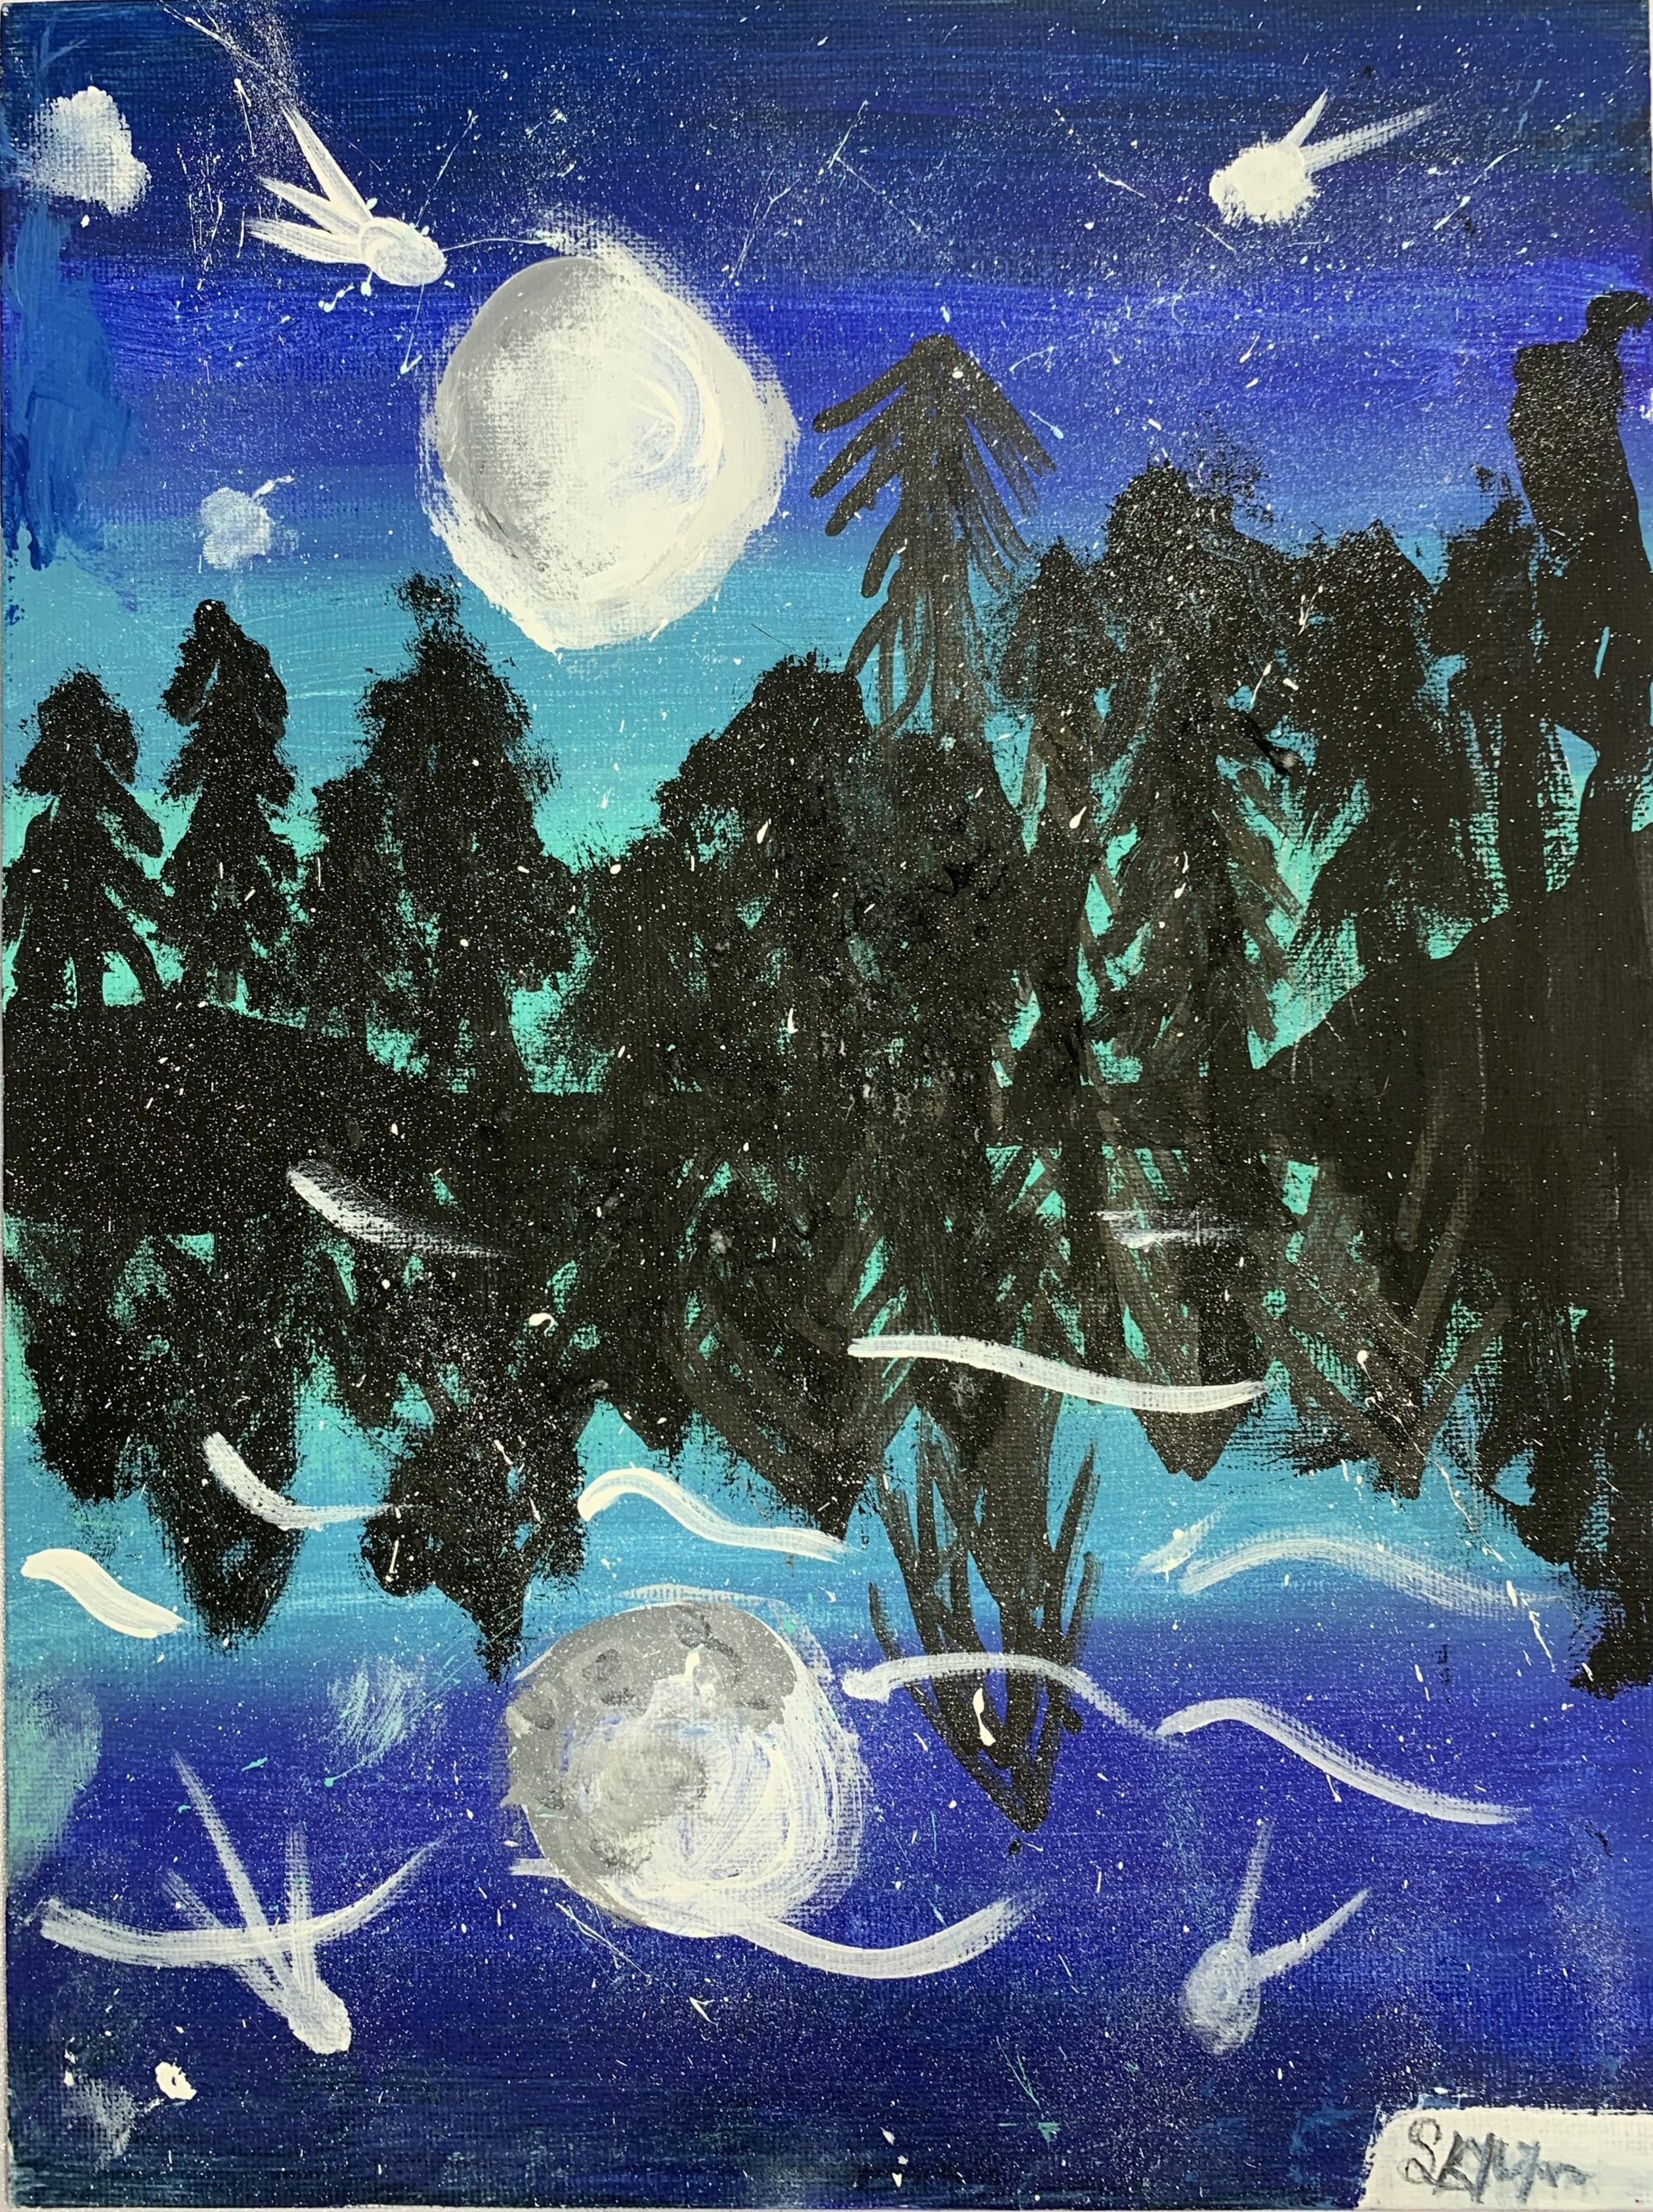 painting of pine trees and stars reflected on a lake at night